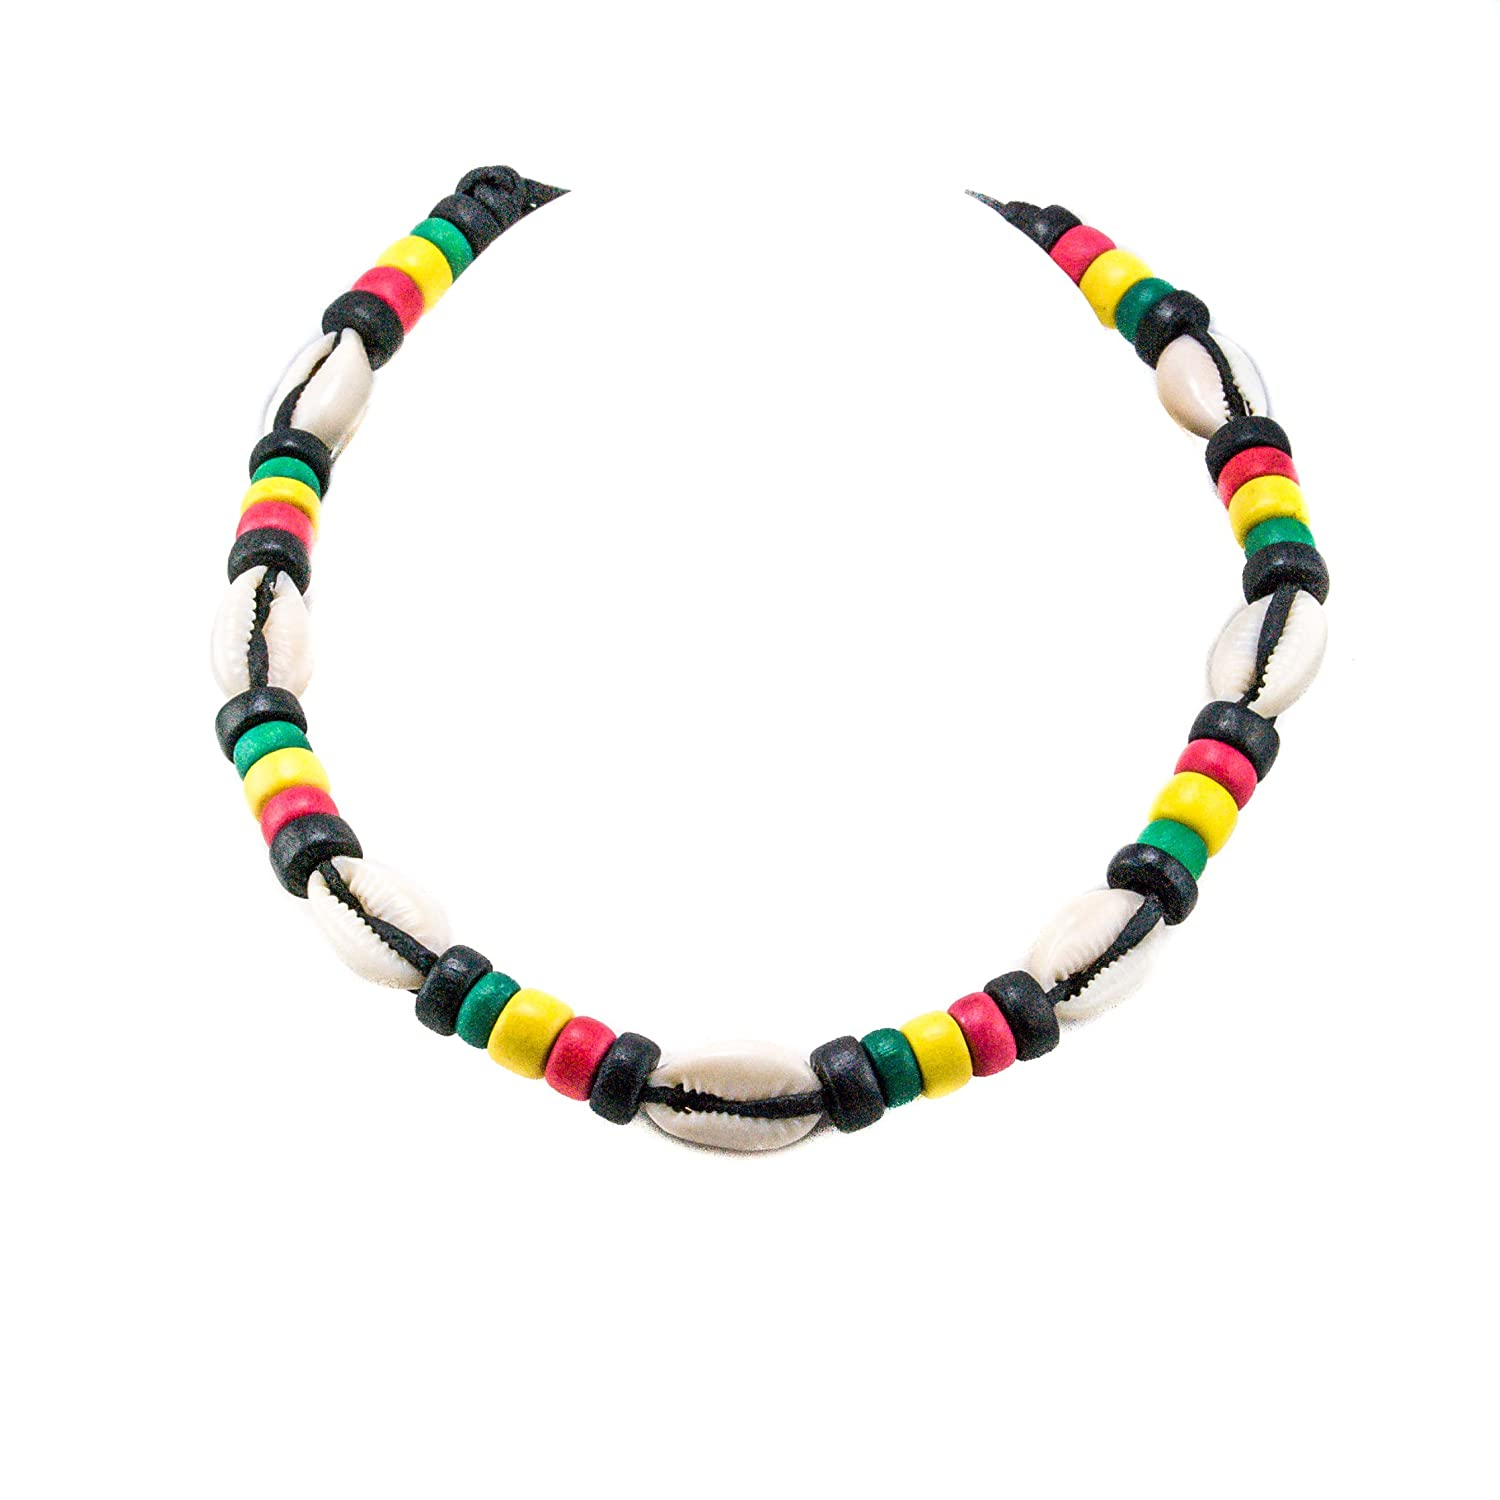 Cowrie Shell Necklace on Black Cord Choker Necklace with Rasta Colored Coconut Wood Beads